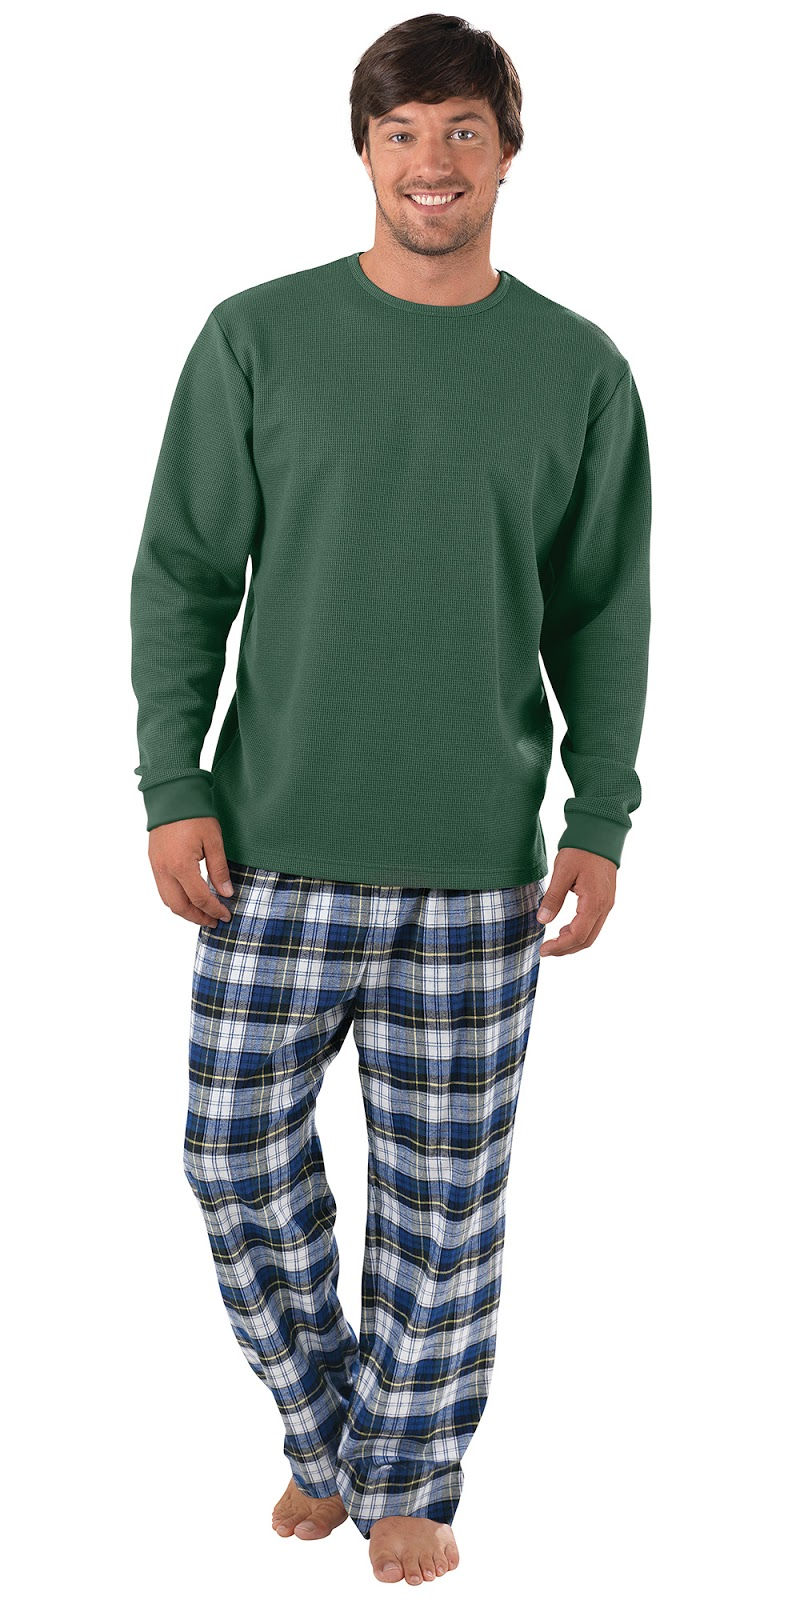 Shop NASCAR Mens Sleepwear at the dirtyinstalzonevx6.ga Shop! Get NASCAR Mens Sleepwear at the dirtyinstalzonevx6.ga Shop, your online source for all Mens Sleepwear.